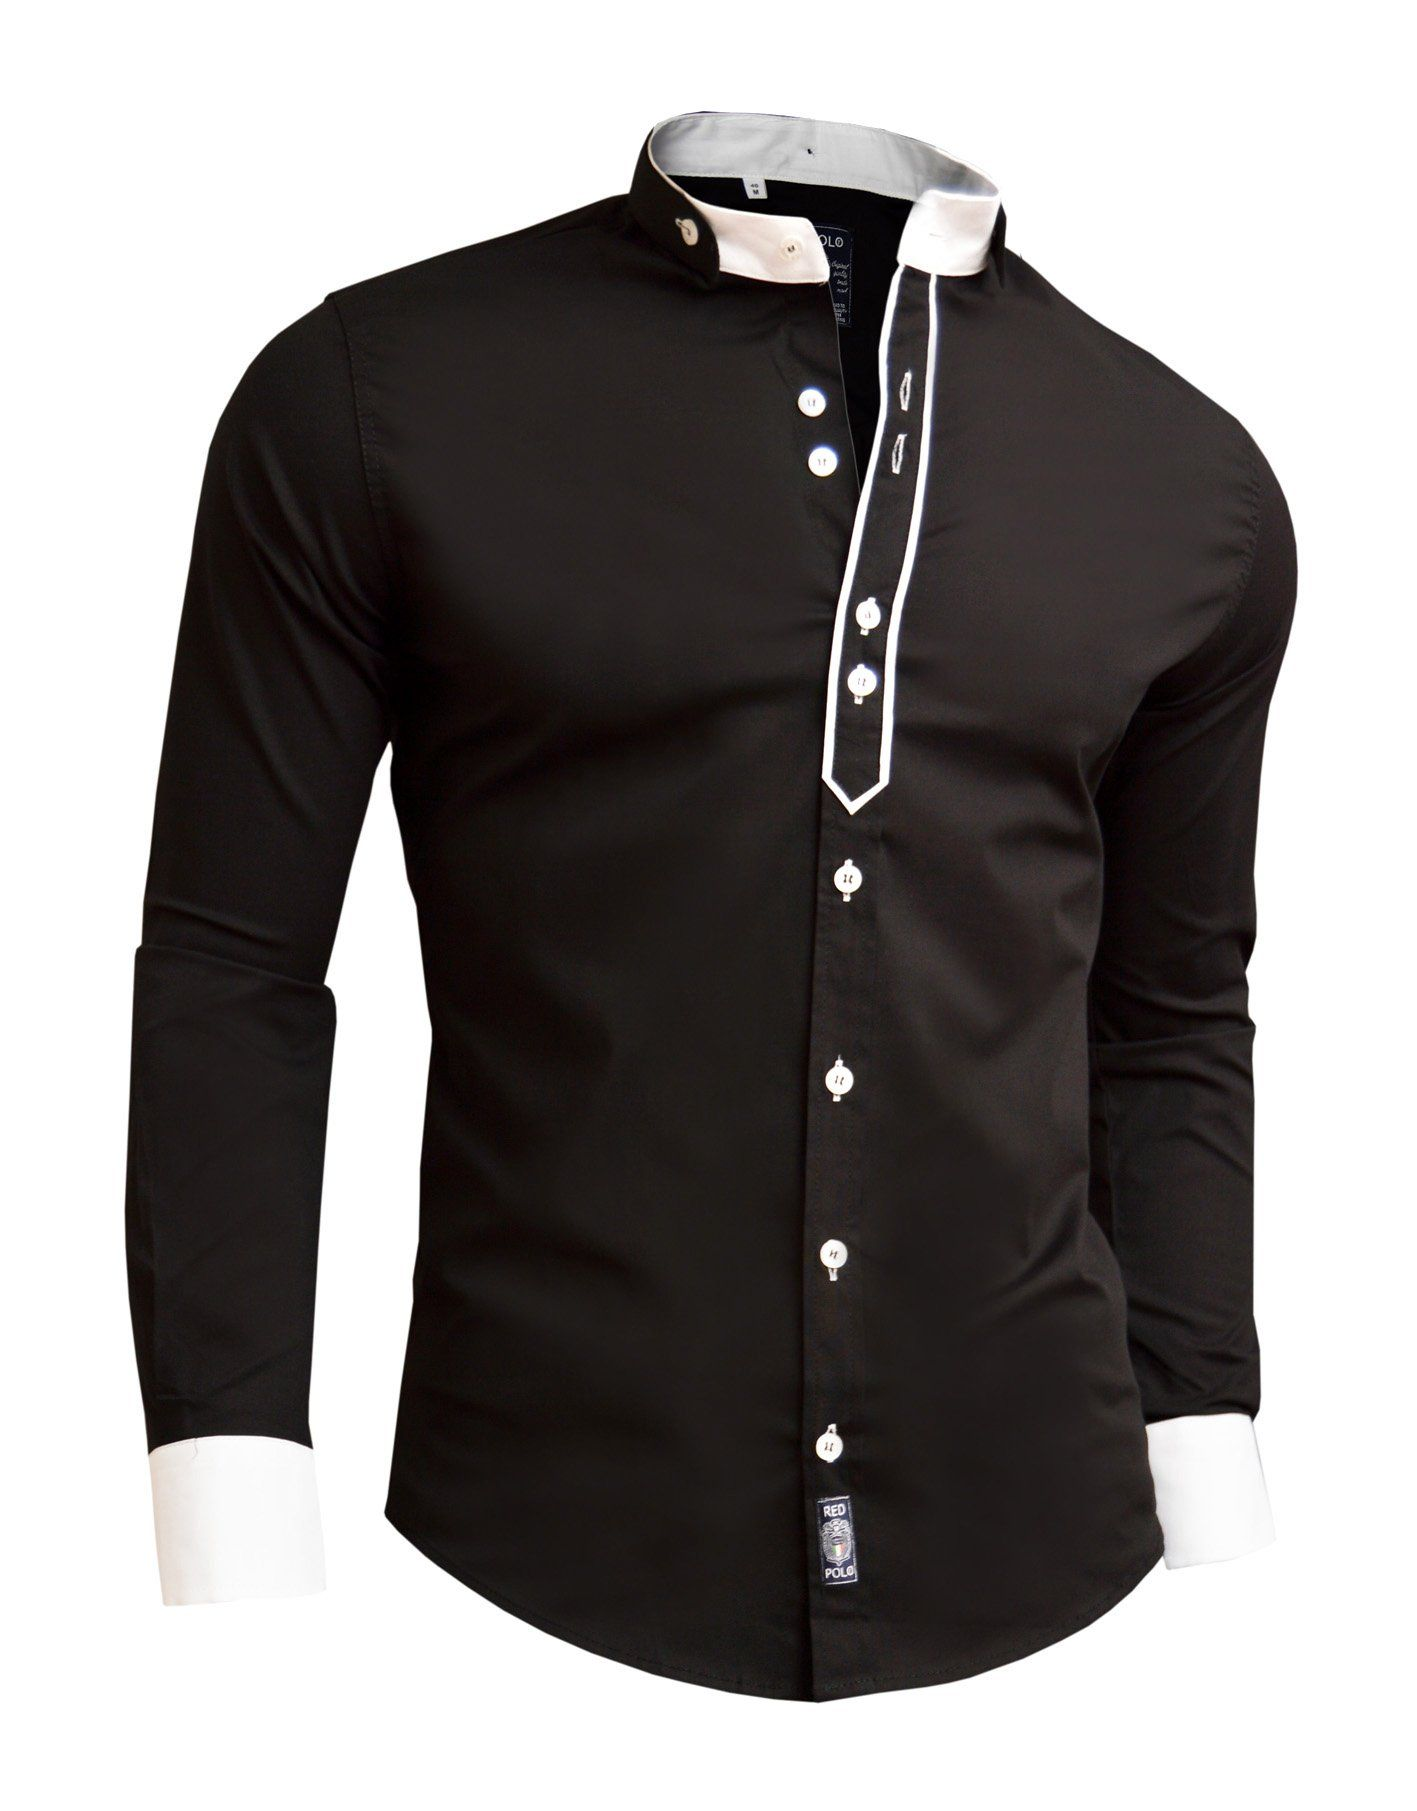 c82b956f Designer Men Casual Formal Double Cuffs Grandad Band Collar Shirt Elegant  Tie DR: Amazon.co.uk: Clothing